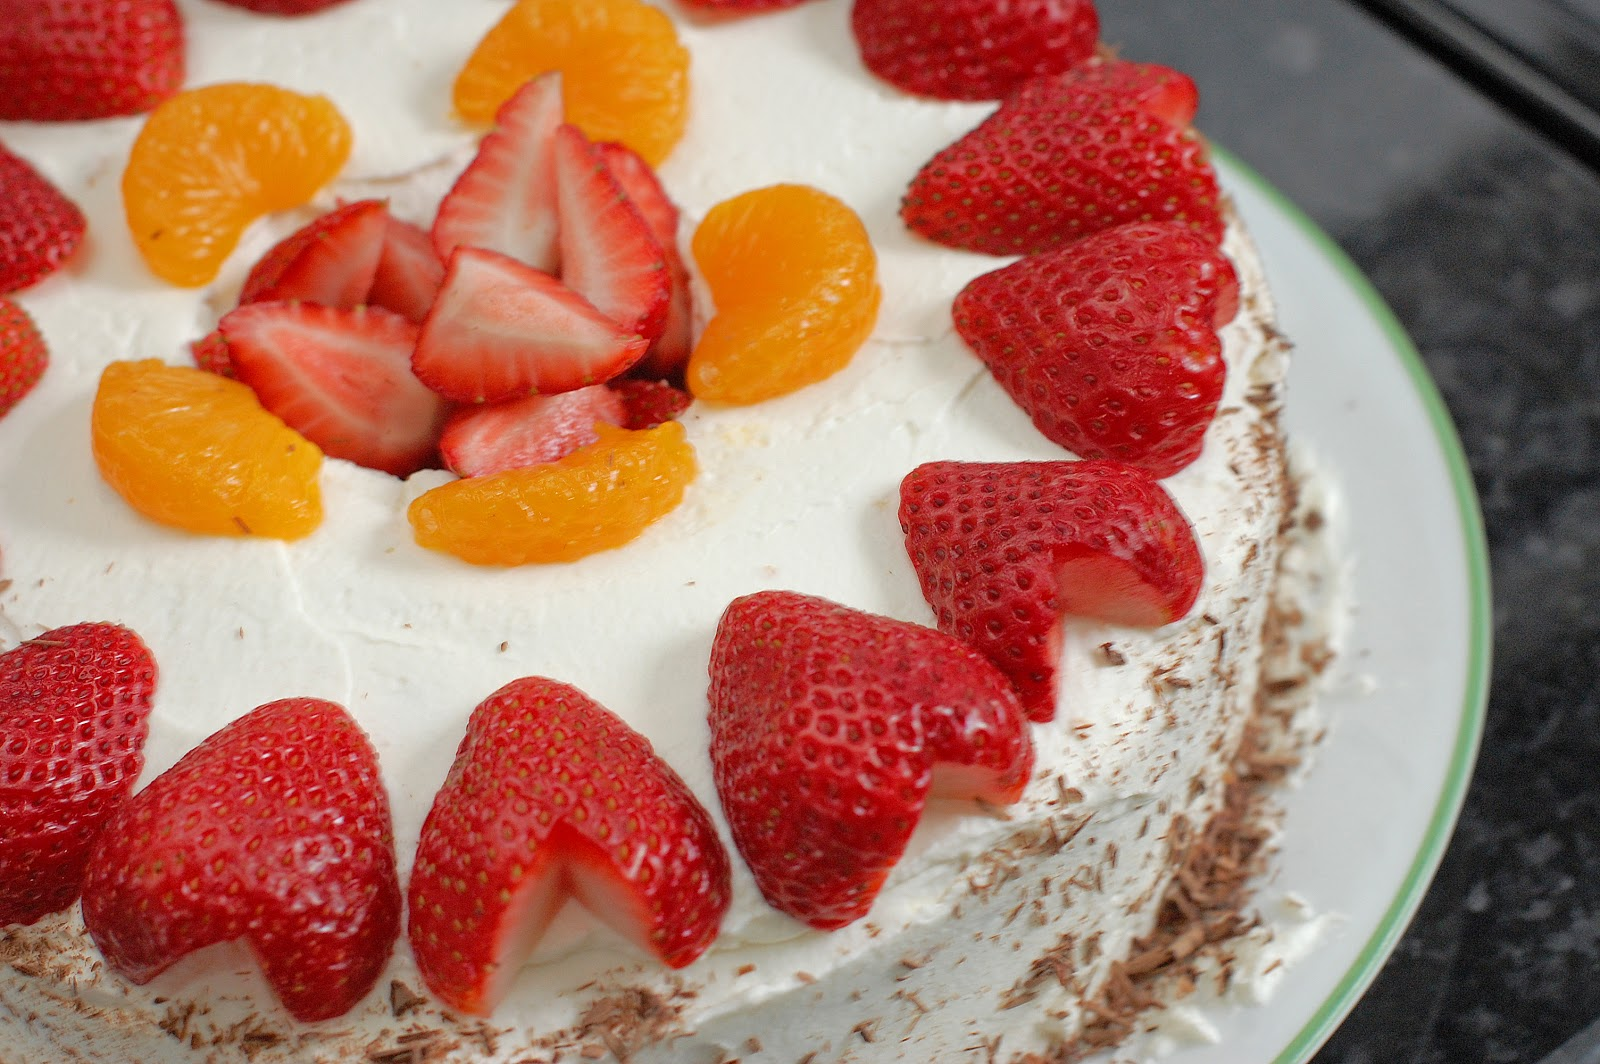 Desserts-Chocolate, Strawberry and more Easy Gourmet Dessert Recipes with photographs.